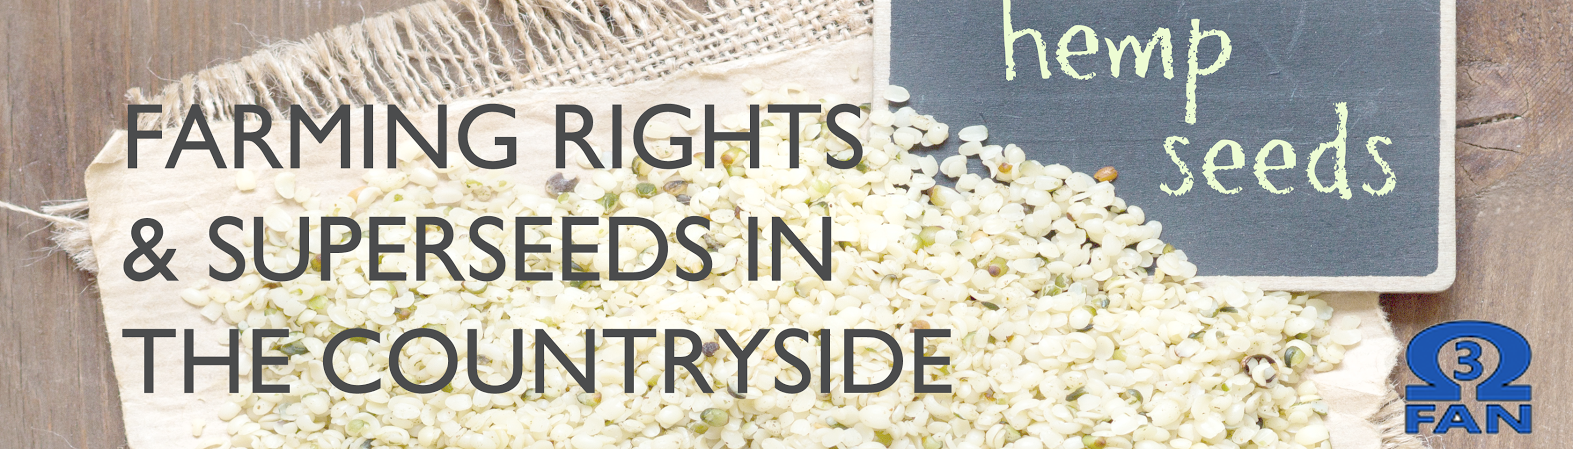 Superseeds & Farming Rights